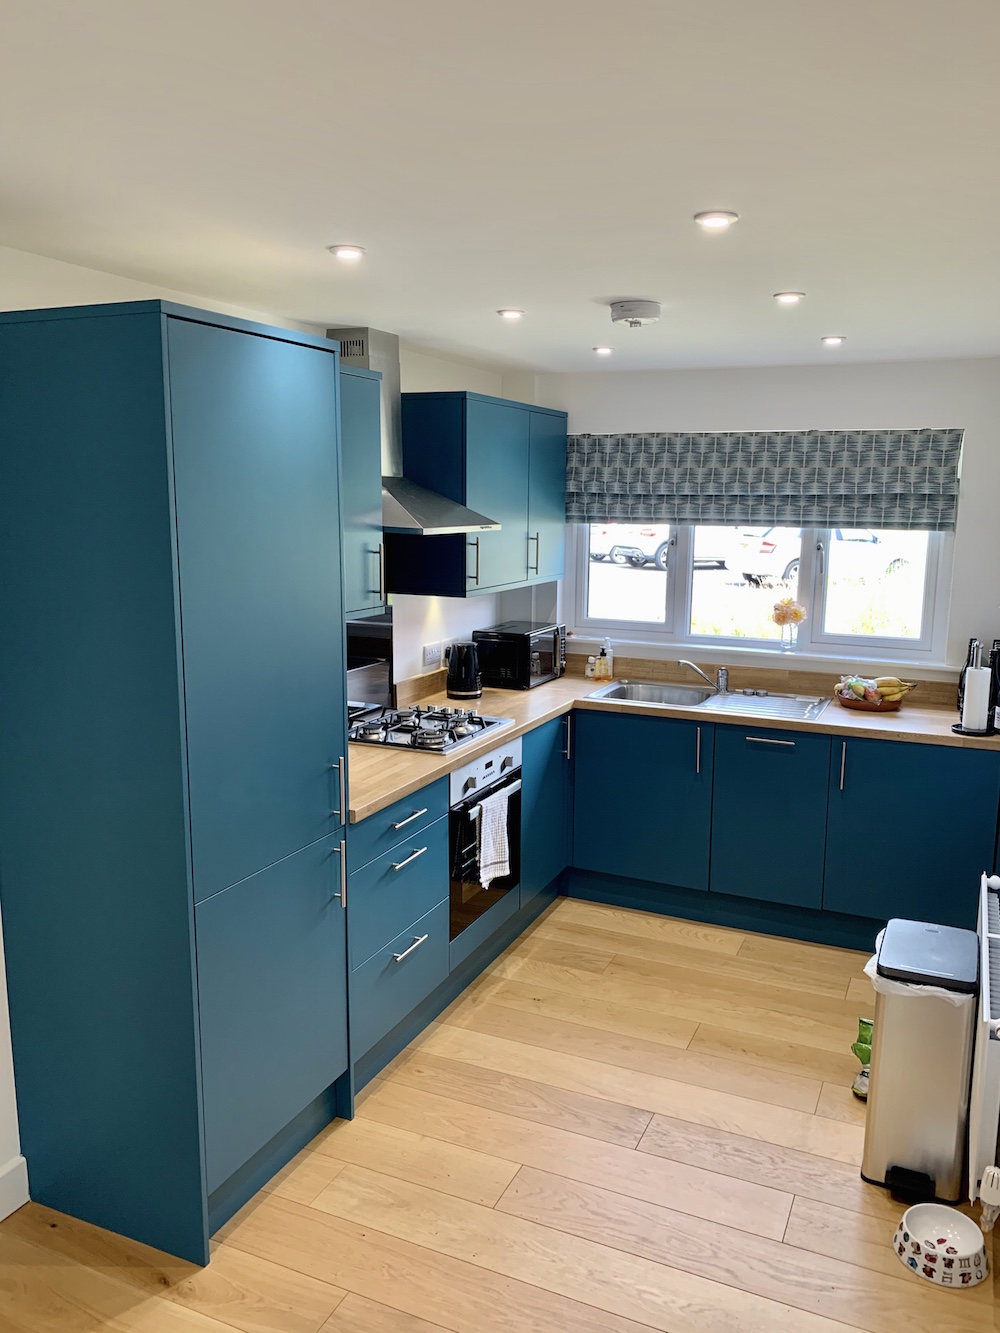 Hand painted kitchen in Spixworth by Traditional Painter Richard Willott.